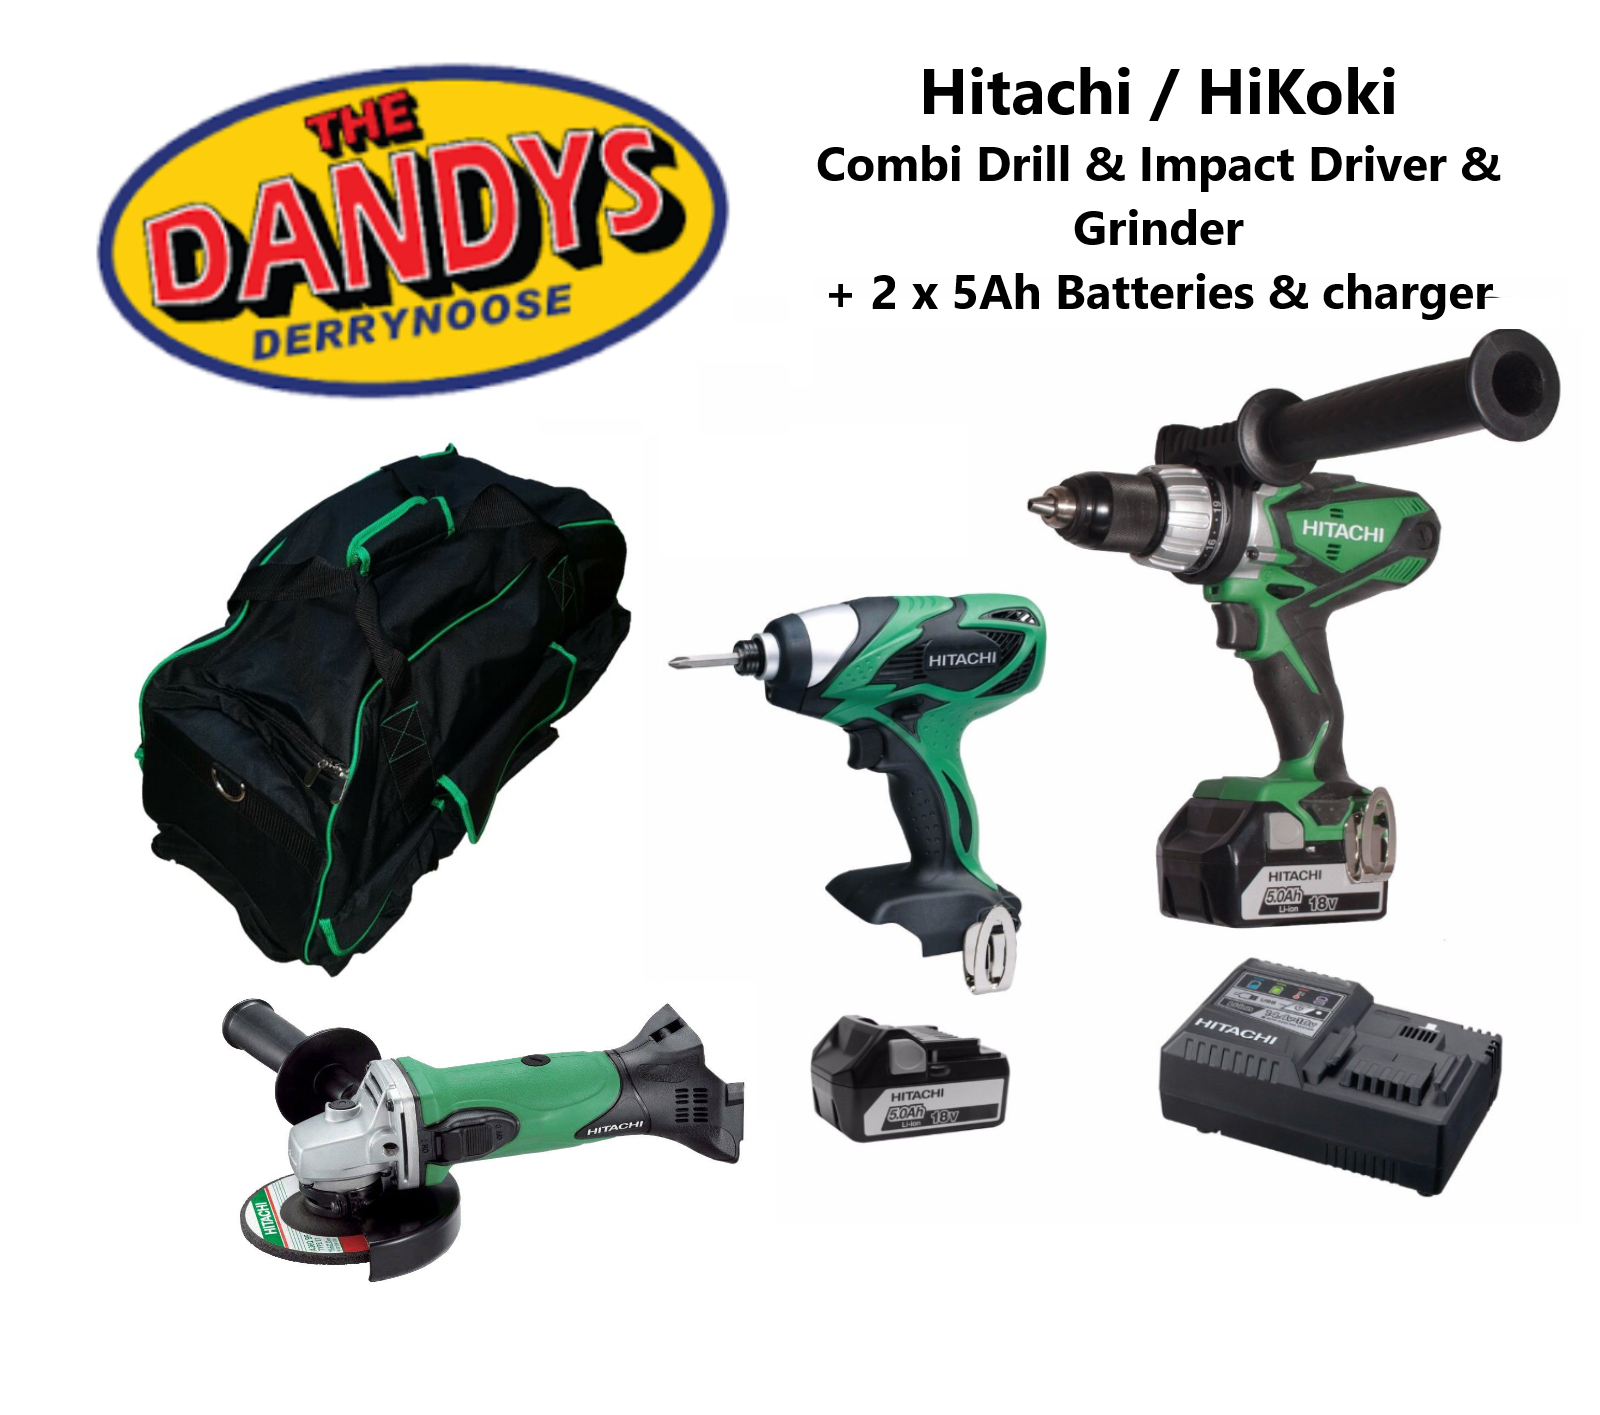 HiKoki / Hitachi - 3 Piece Tool Bag